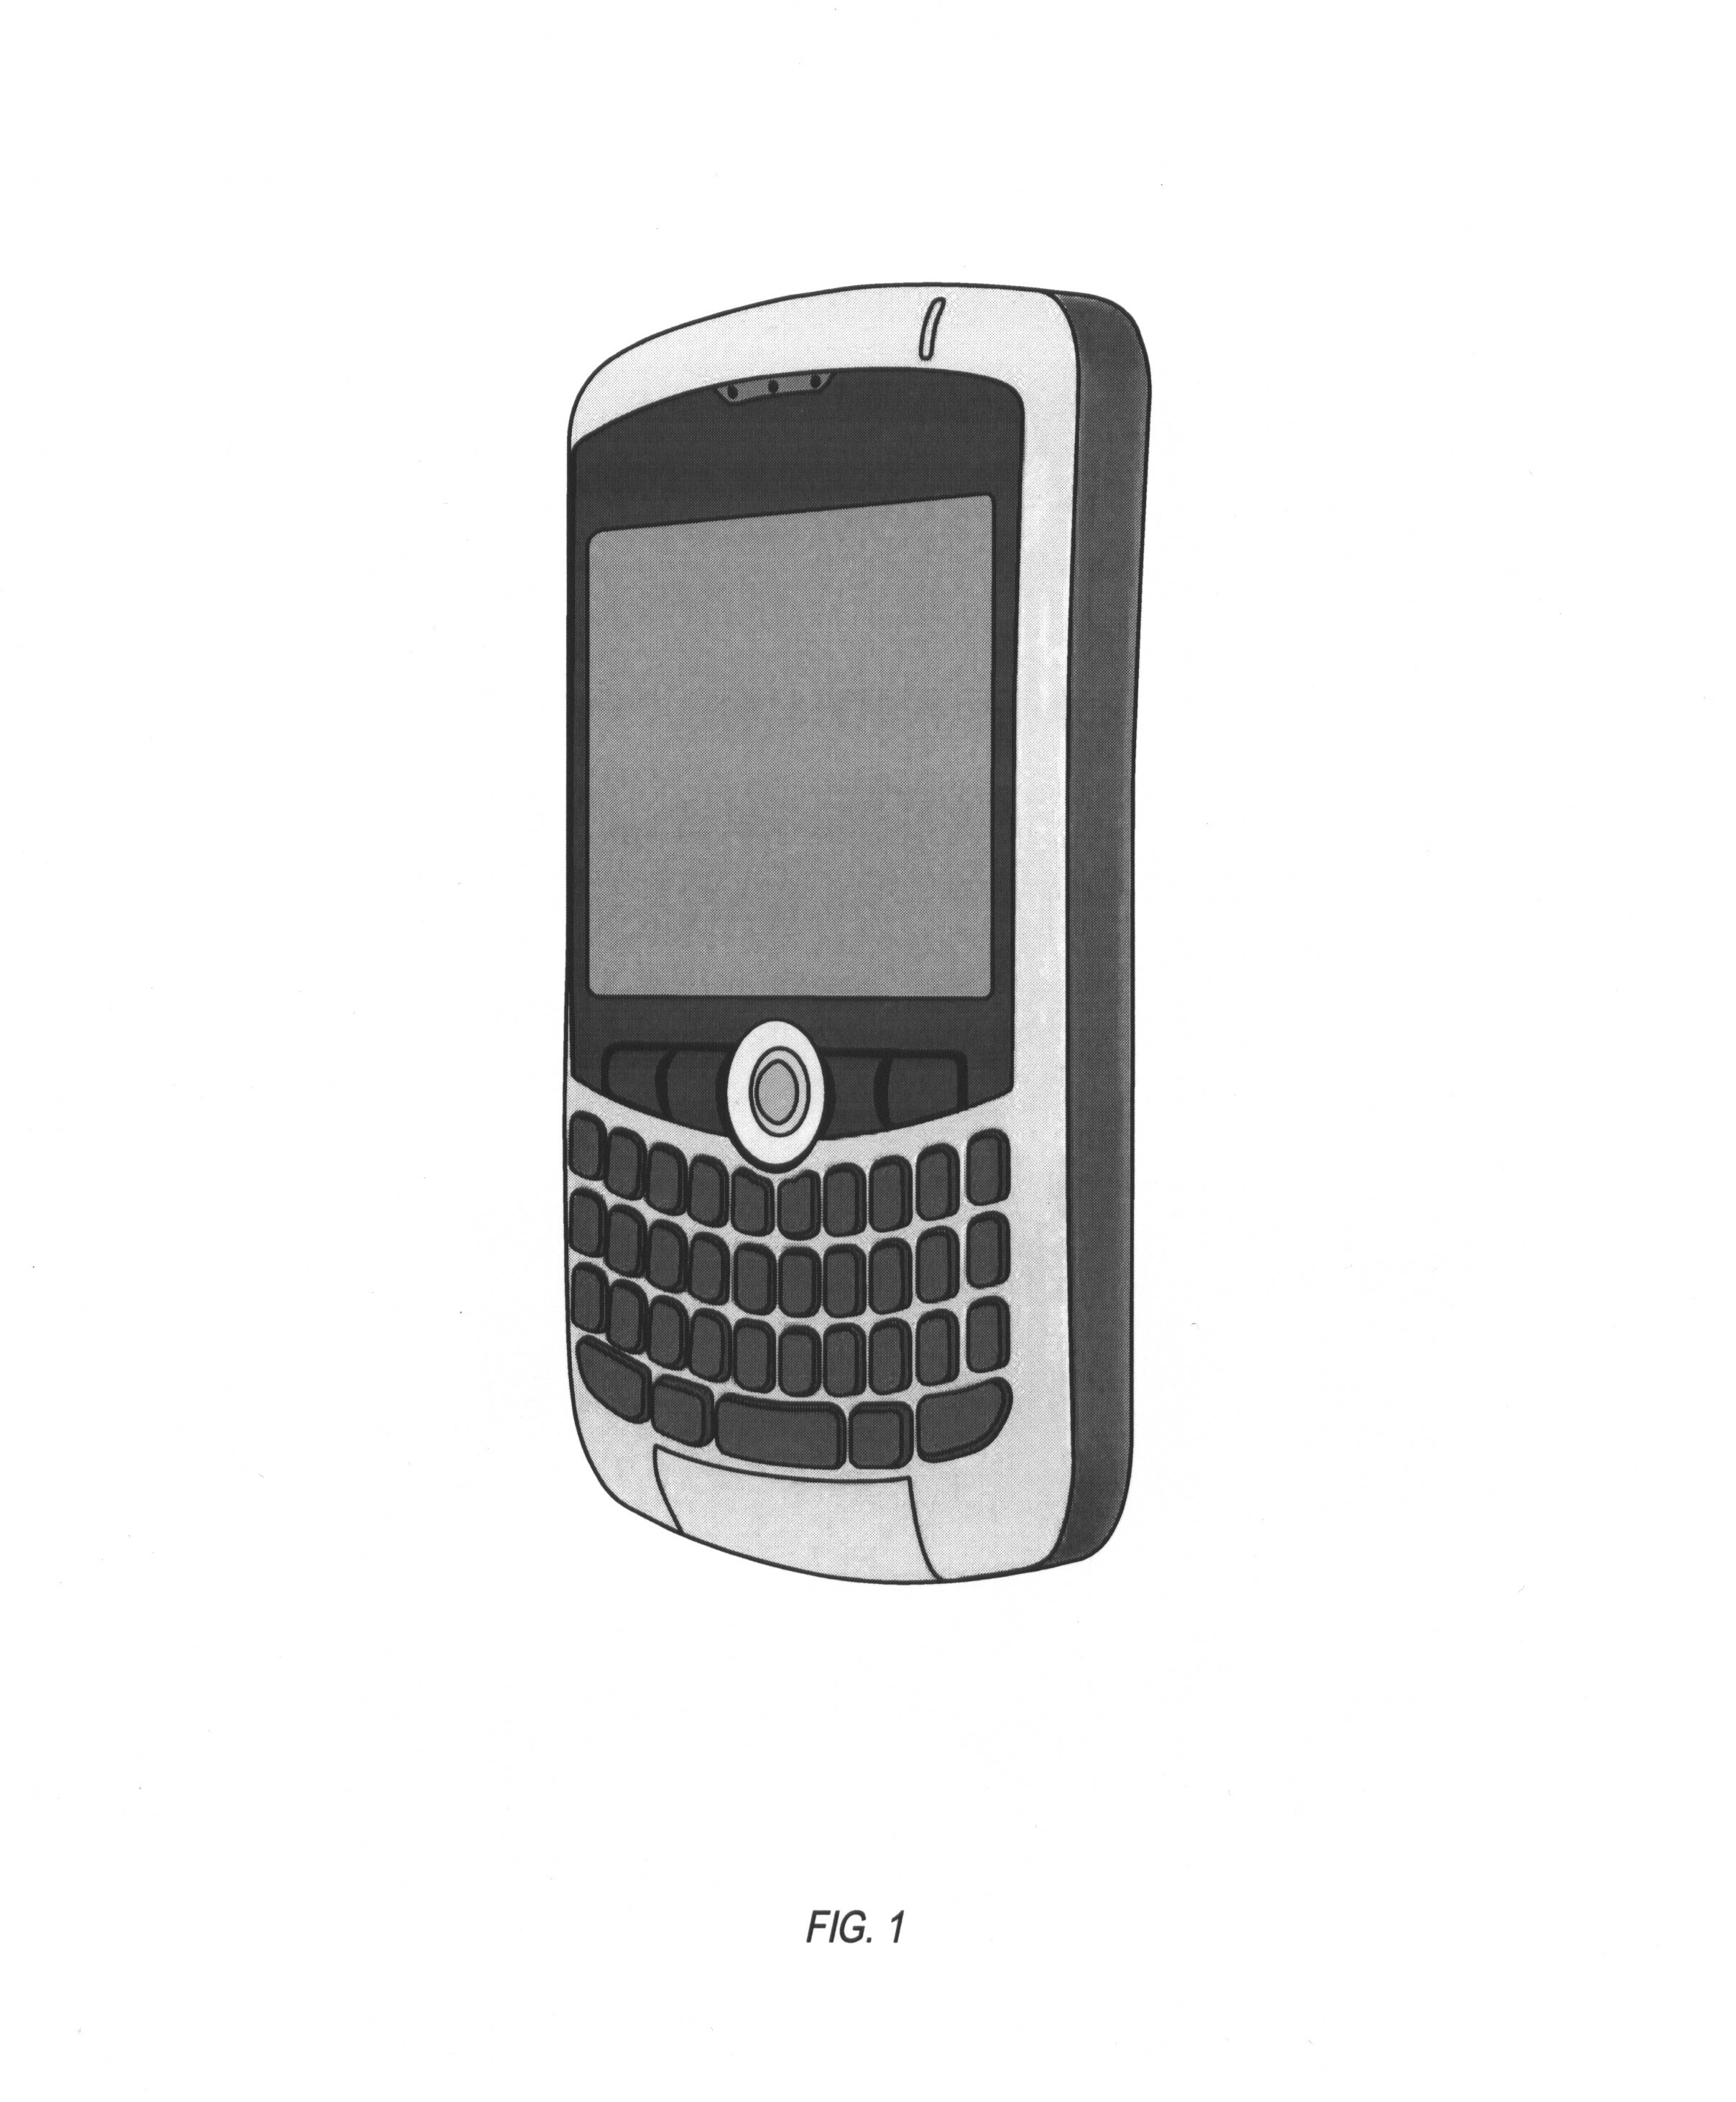 125919 HANDHELD ELECTRONIC DEVICE